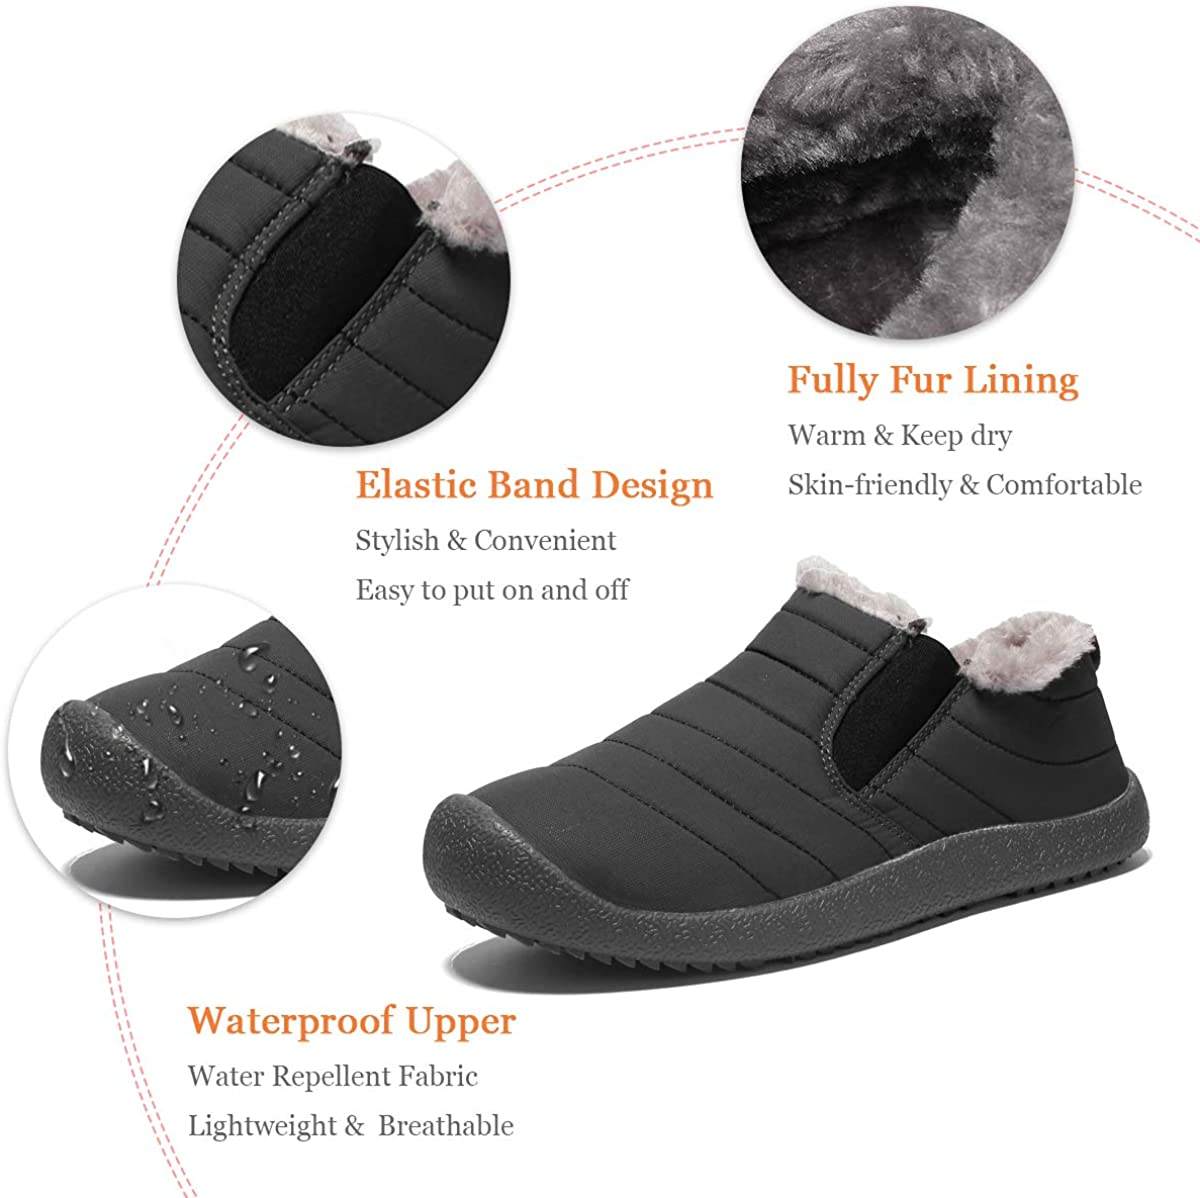 Dacomfy Mens Winter Boots Fur Lined Snow Ankle Boots Outdoor Water Resistant Slip on Sneakers Anti-Slip Warm Comfortable Walking Shoes